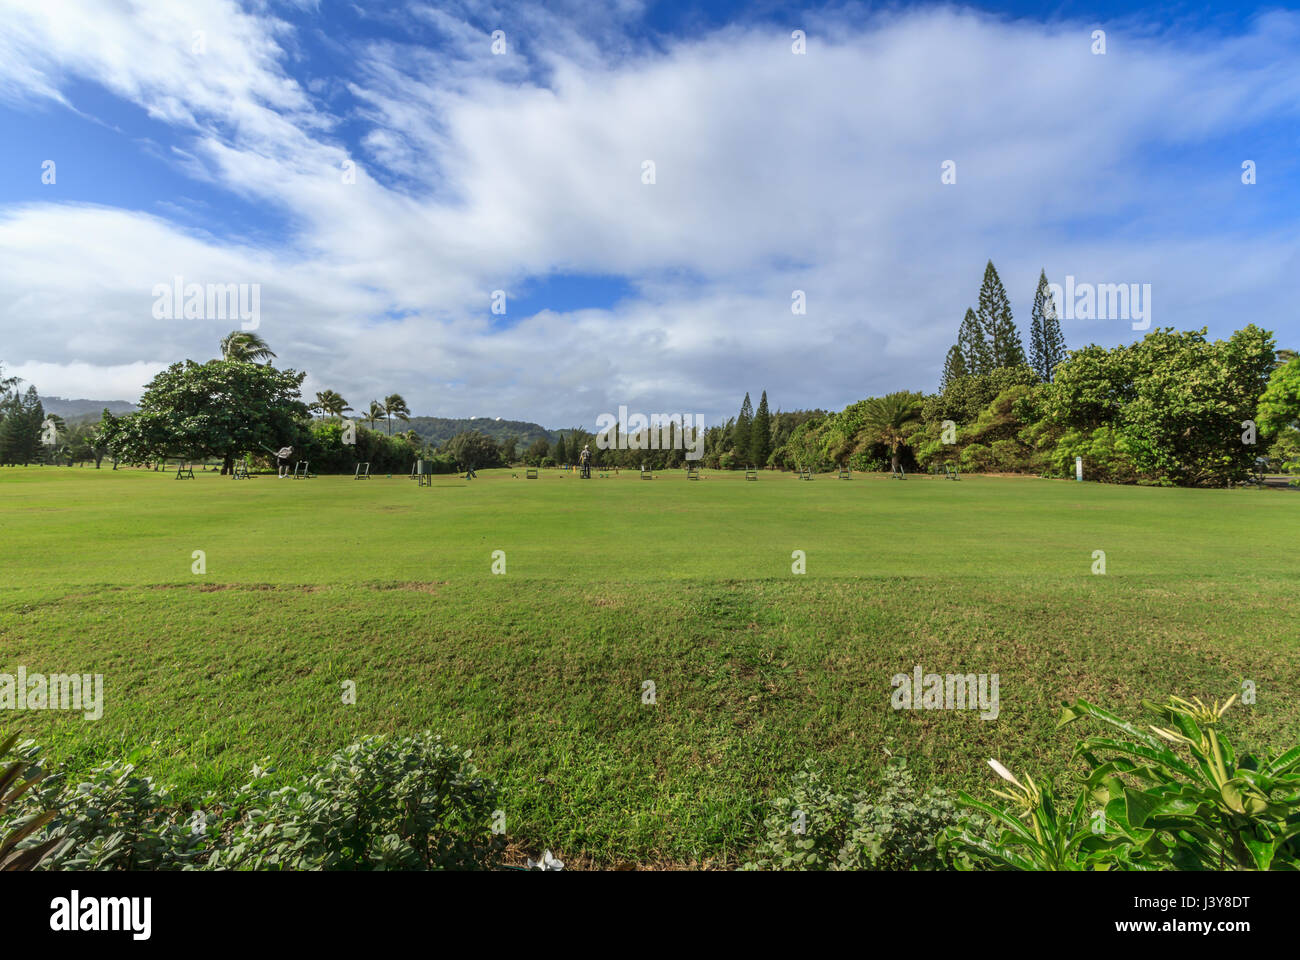 Kahuku Hawaii, Nov. 17 2015: View of the golf course at the Turtle Bay Resort on the north shore of Oahu - Stock Image